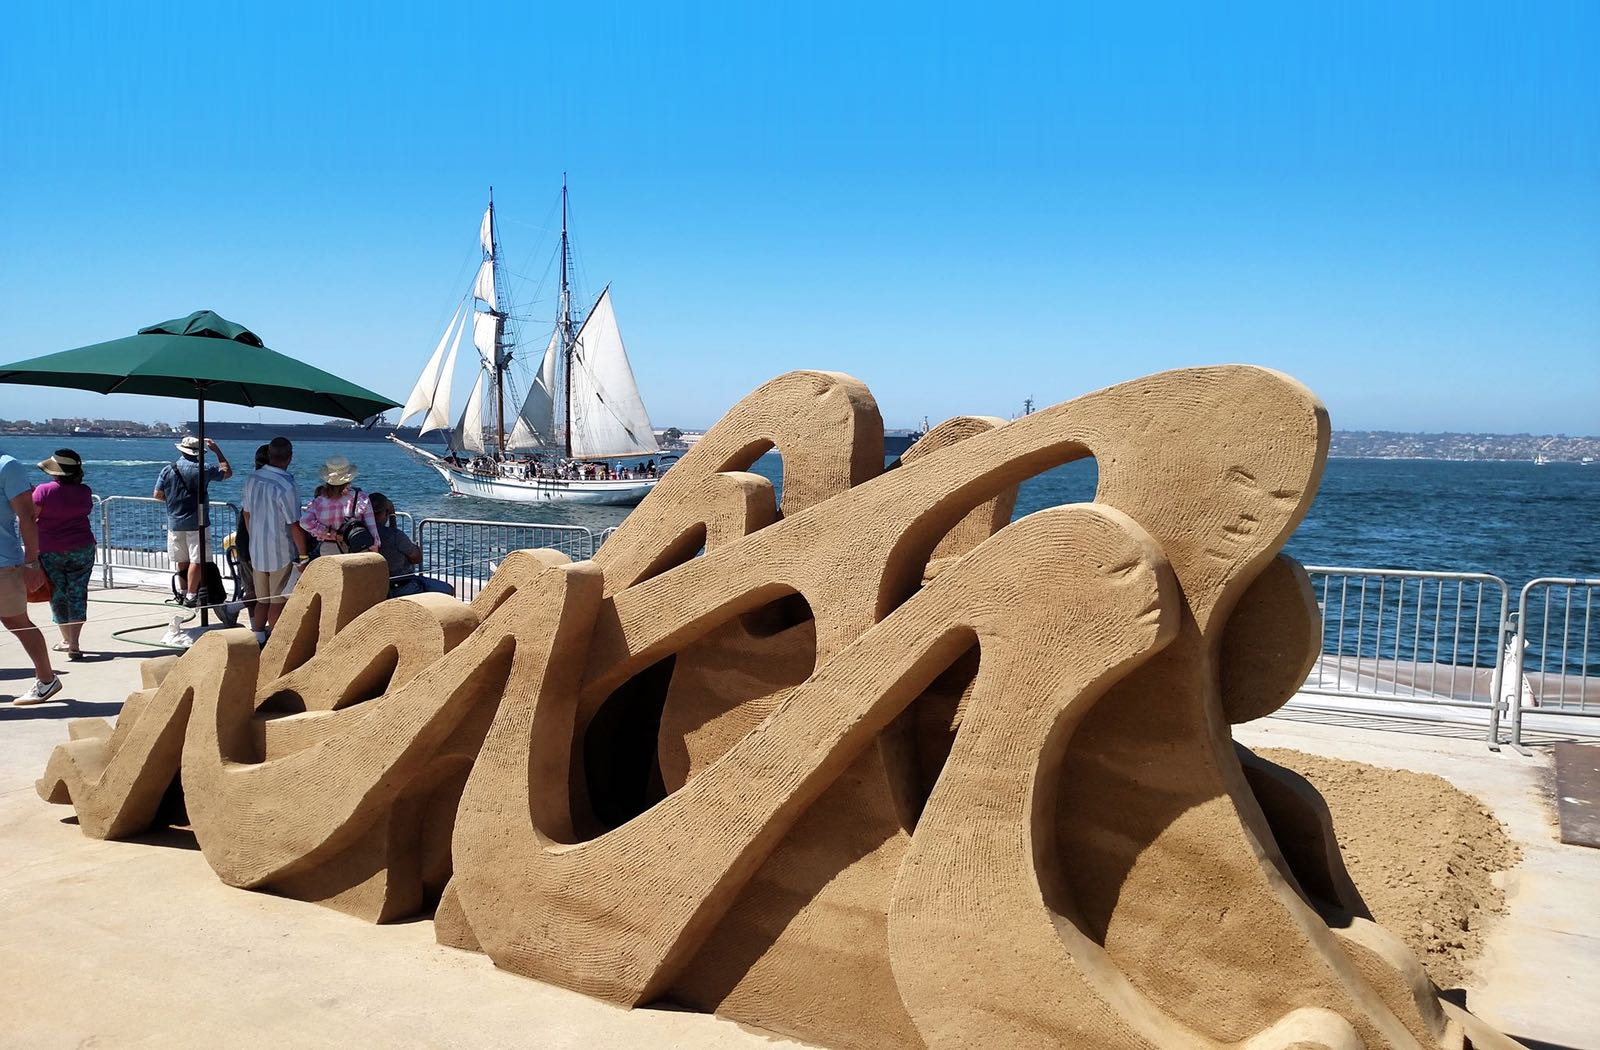 US Sand Sculpting Challenge and Dimensional Art Exposition - Top Things to Do in San Diego